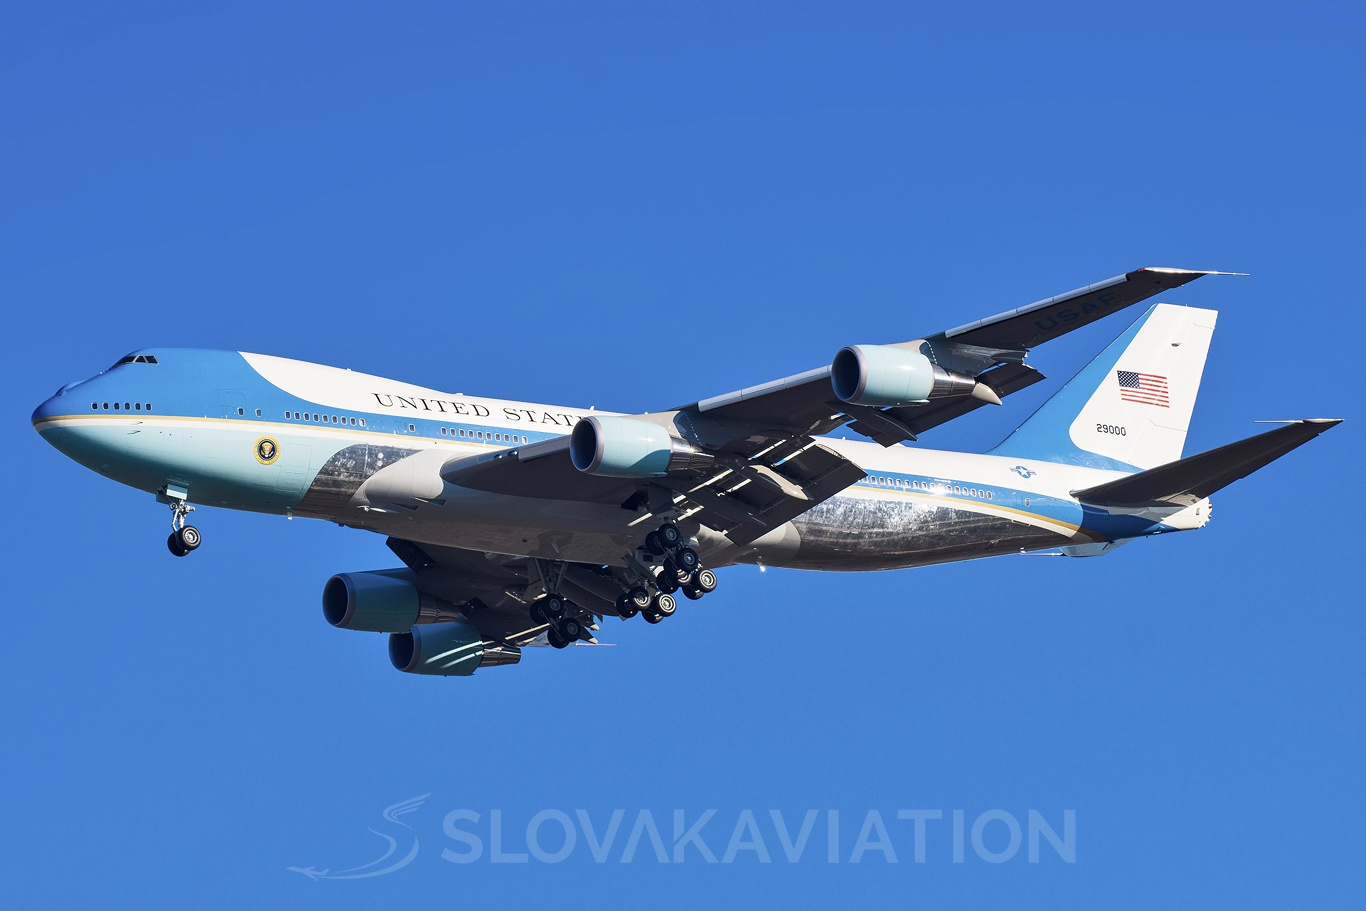 USA - Air Force Boeing 747-200 29000